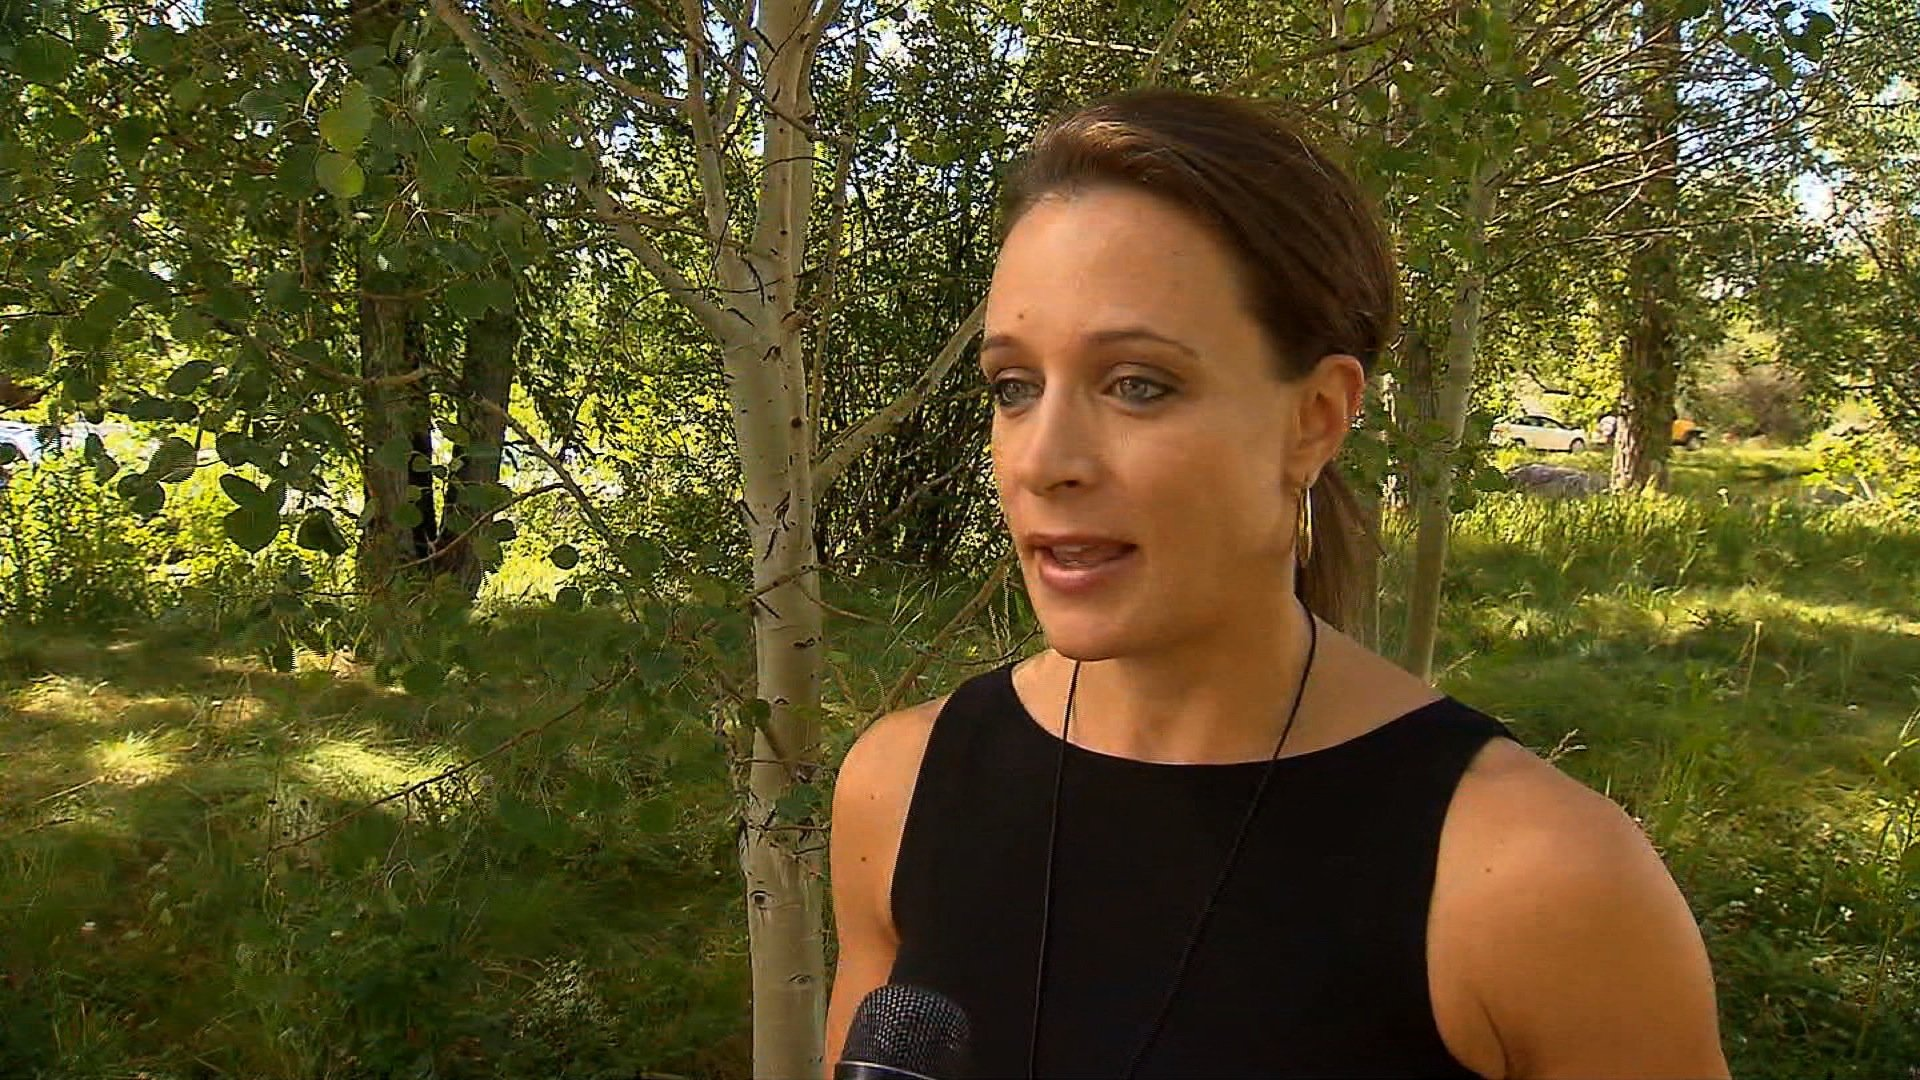 Paula Broadwell speaks to CNN in Aspen, Colorado on July 25, 2012. Broadwell